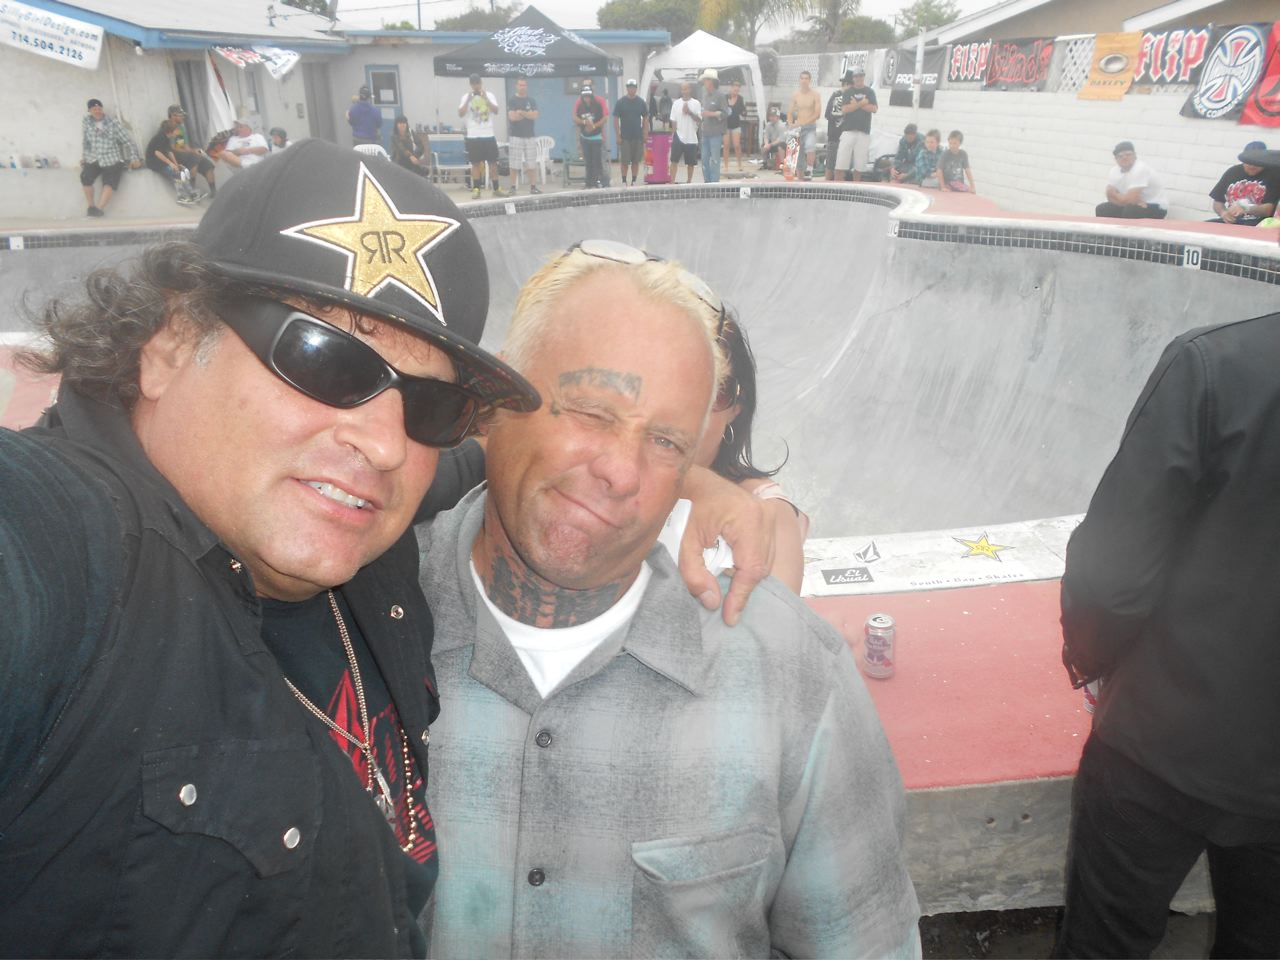 Dave Duncan and Jay Adams. Photo: Courtesy of Dave Duncan